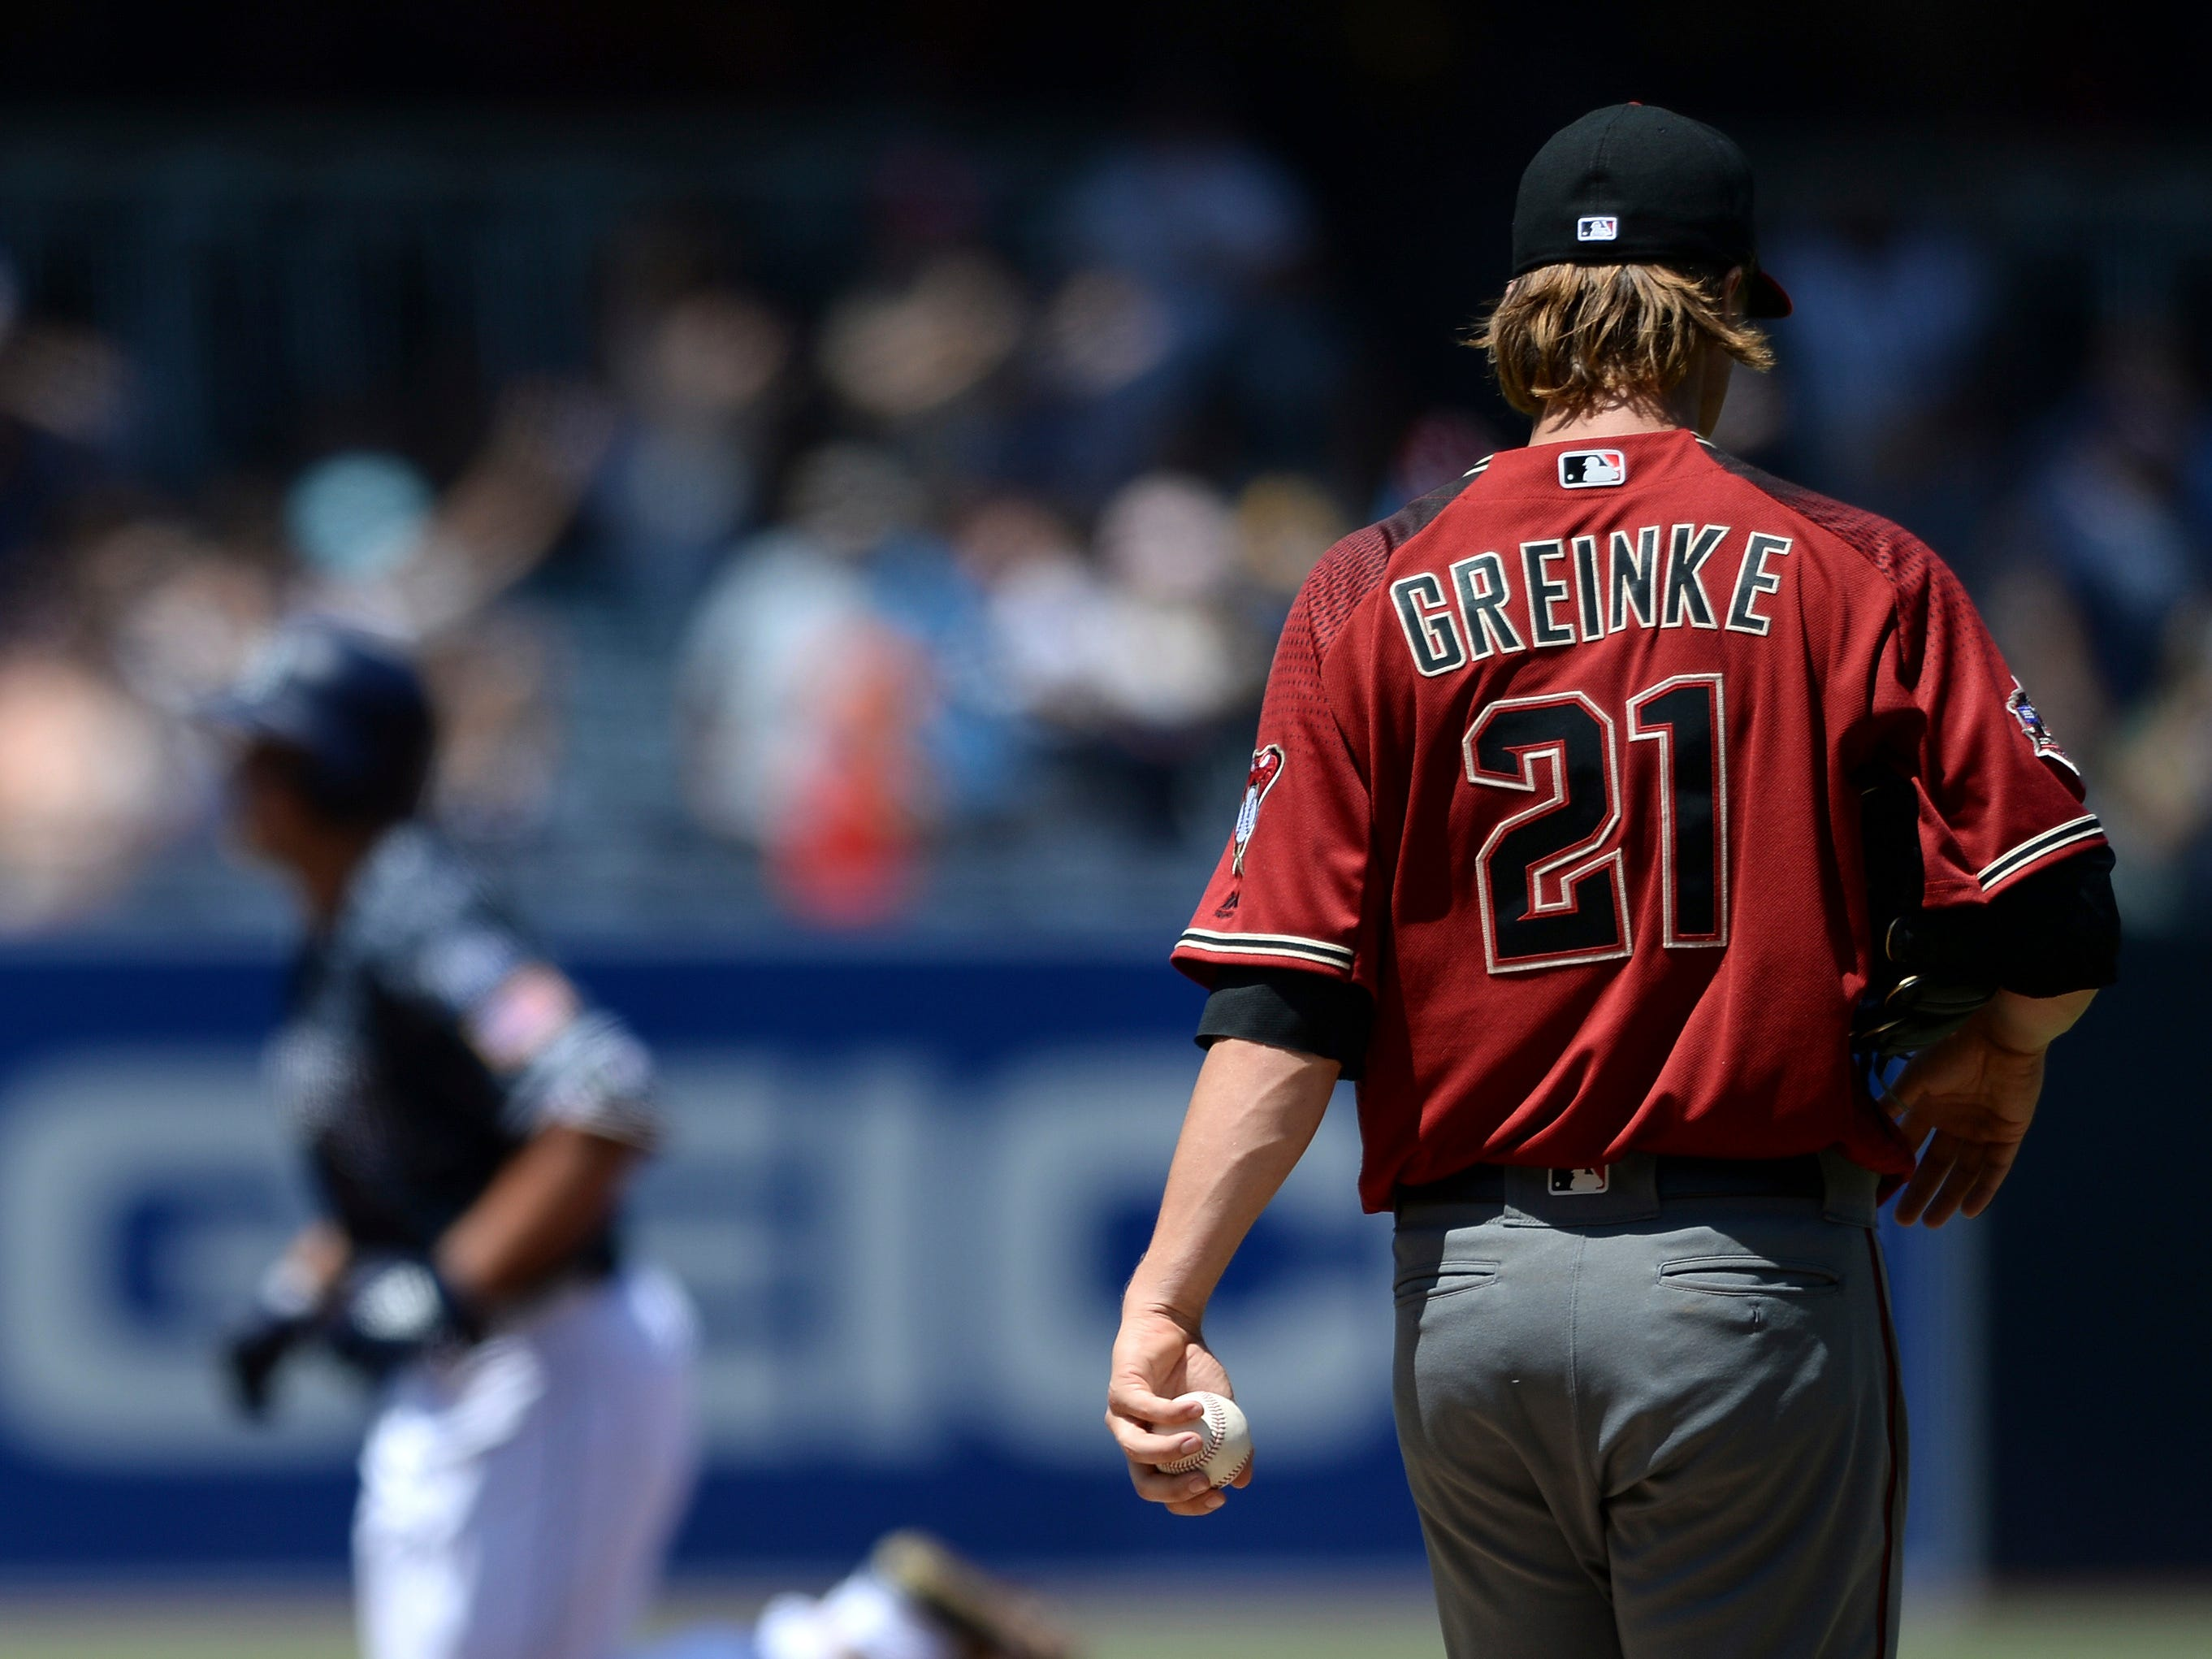 Arizona Diamondbacks starting pitcher Zack Greinke (21) reacts on the mound as San Diego Padres' Hunter Renfroe rounds the bases after hitting a two-run home run during the first inning of a baseball game Sunday, Aug. 19, 2018, in San Diego.